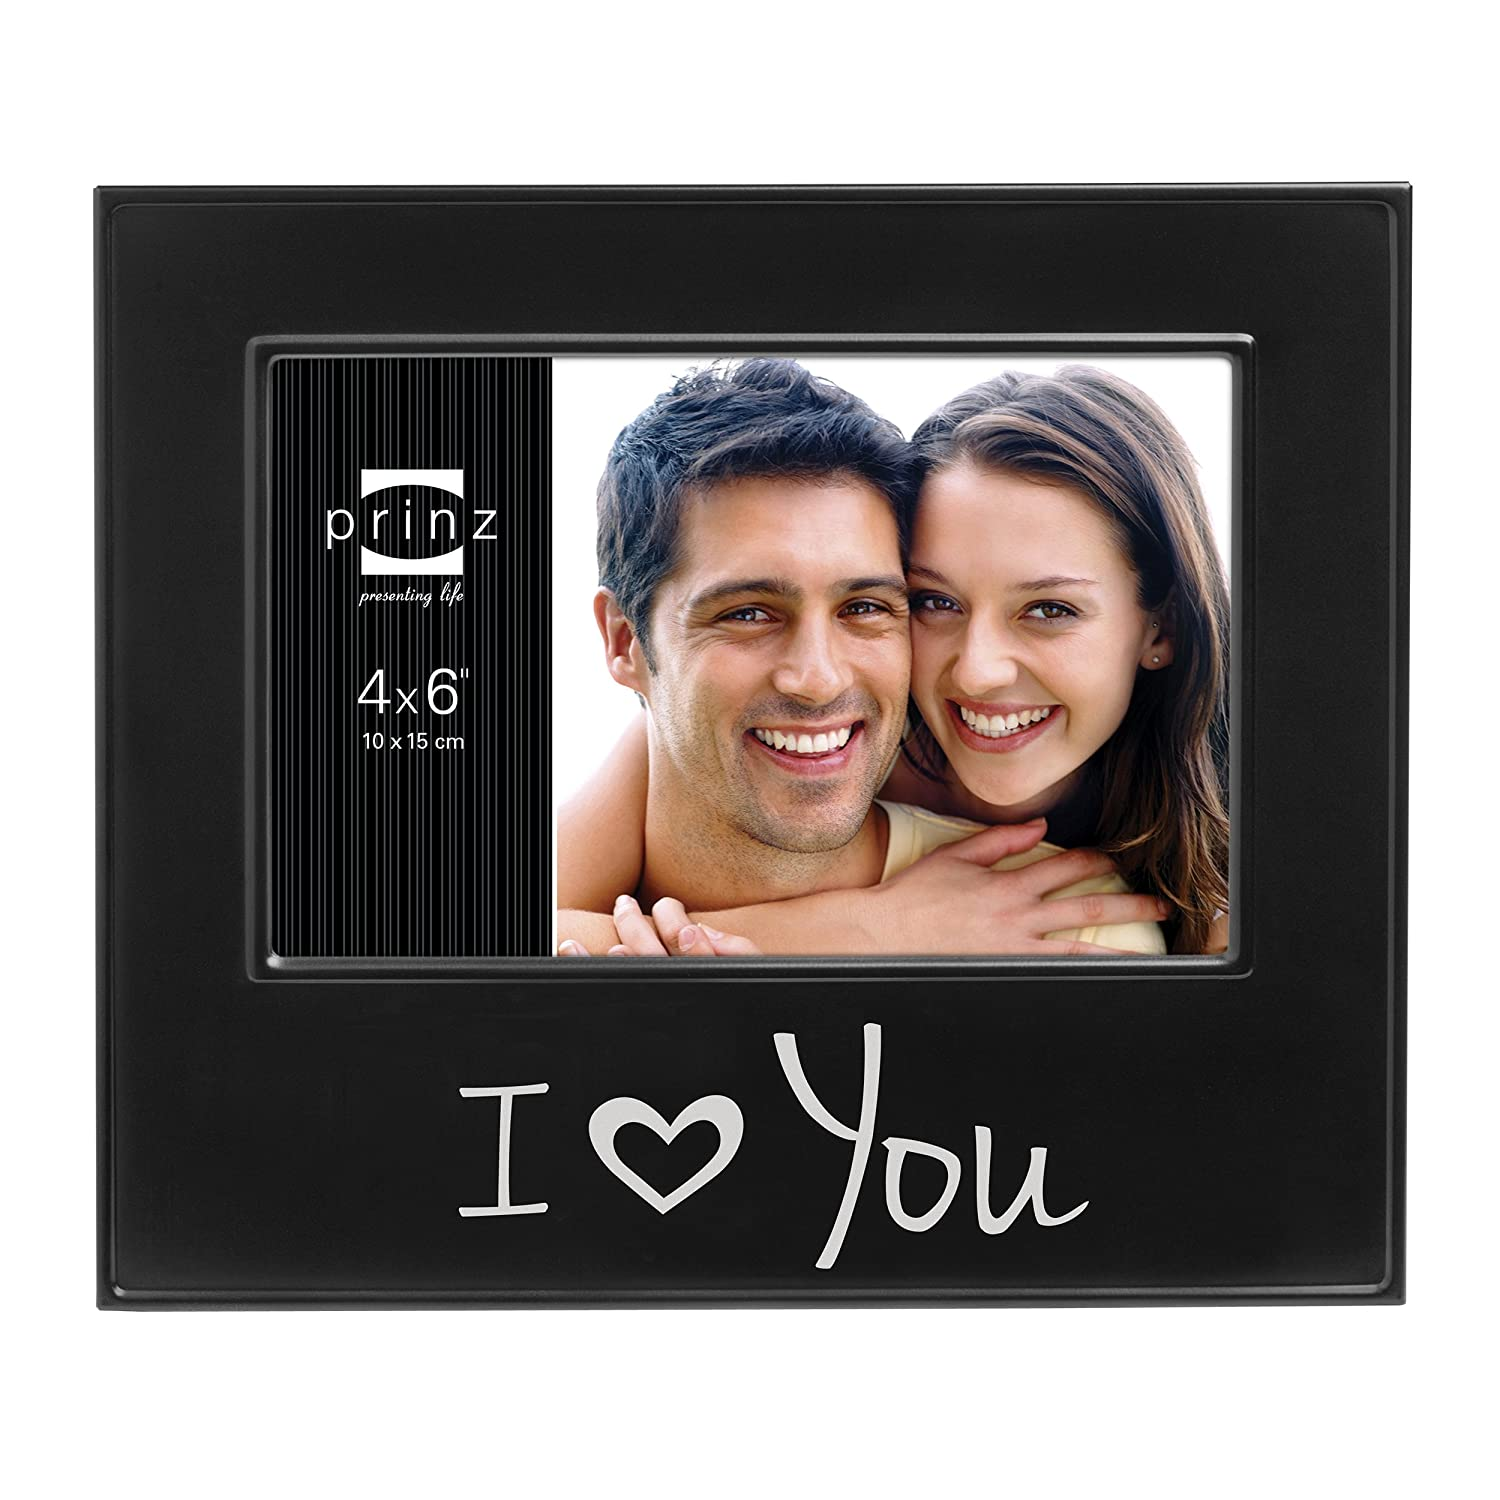 Prinz I Love You Metal Frame for 6 by 4-Inch Horizontal Photo